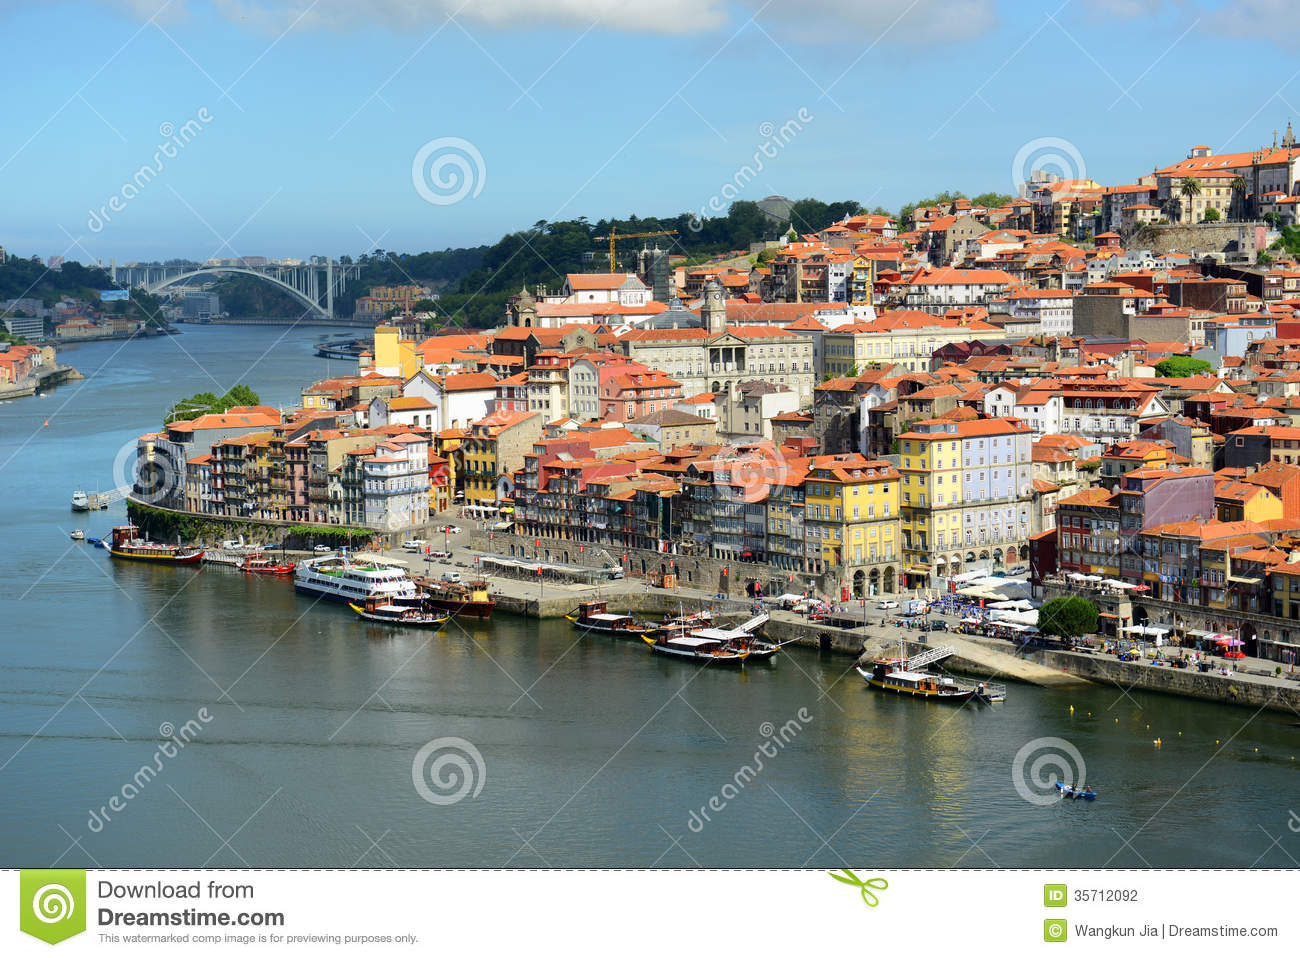 stadt fluss ansicht porto alte porto portugal stockfoto bild 35712092. Black Bedroom Furniture Sets. Home Design Ideas